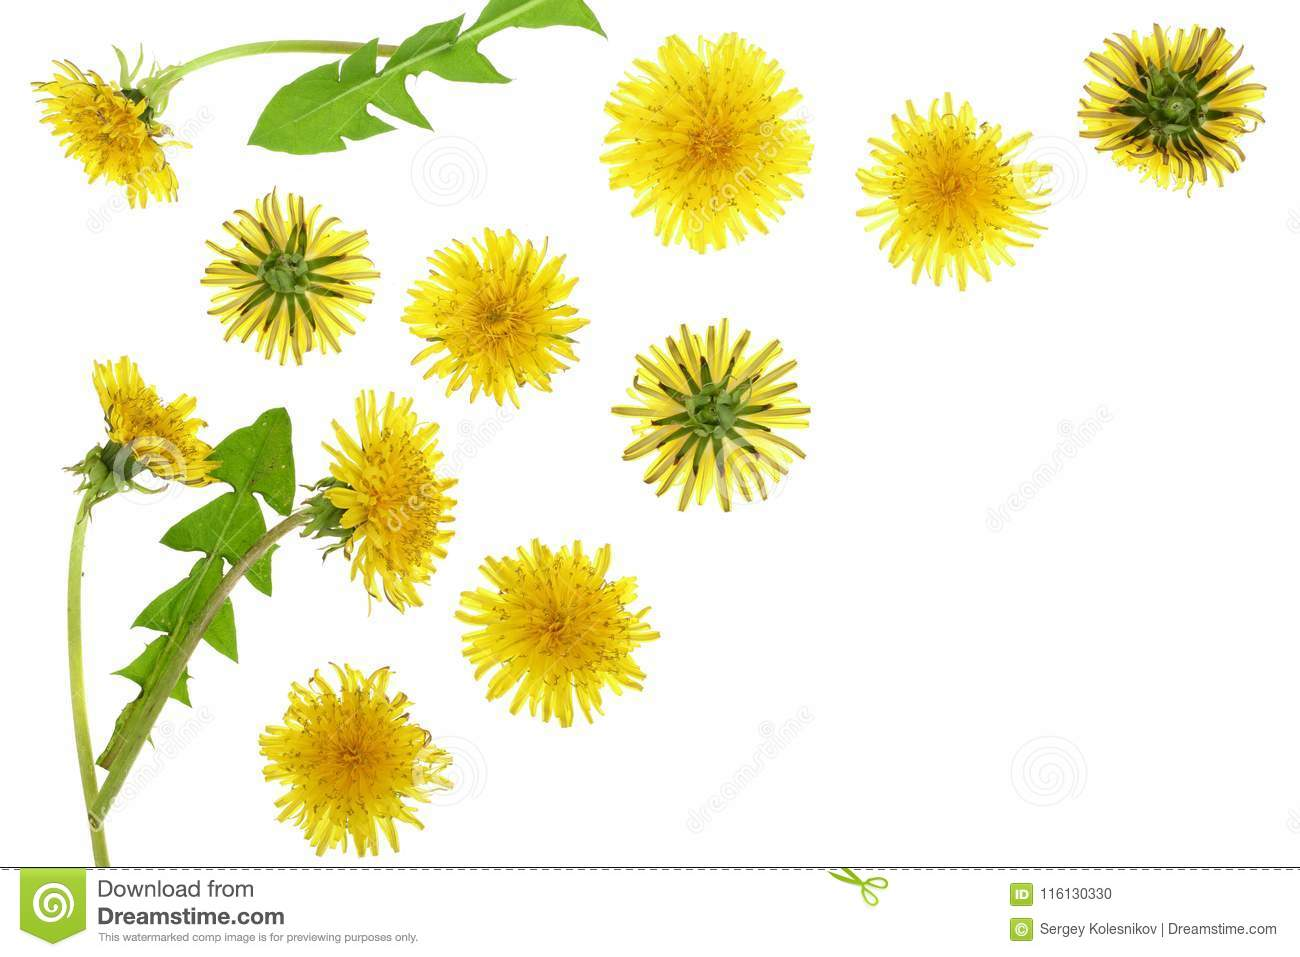 Dandelion flower or Taraxacum Officinale isolated on white background with copy space for your text. Top view. Flat lay